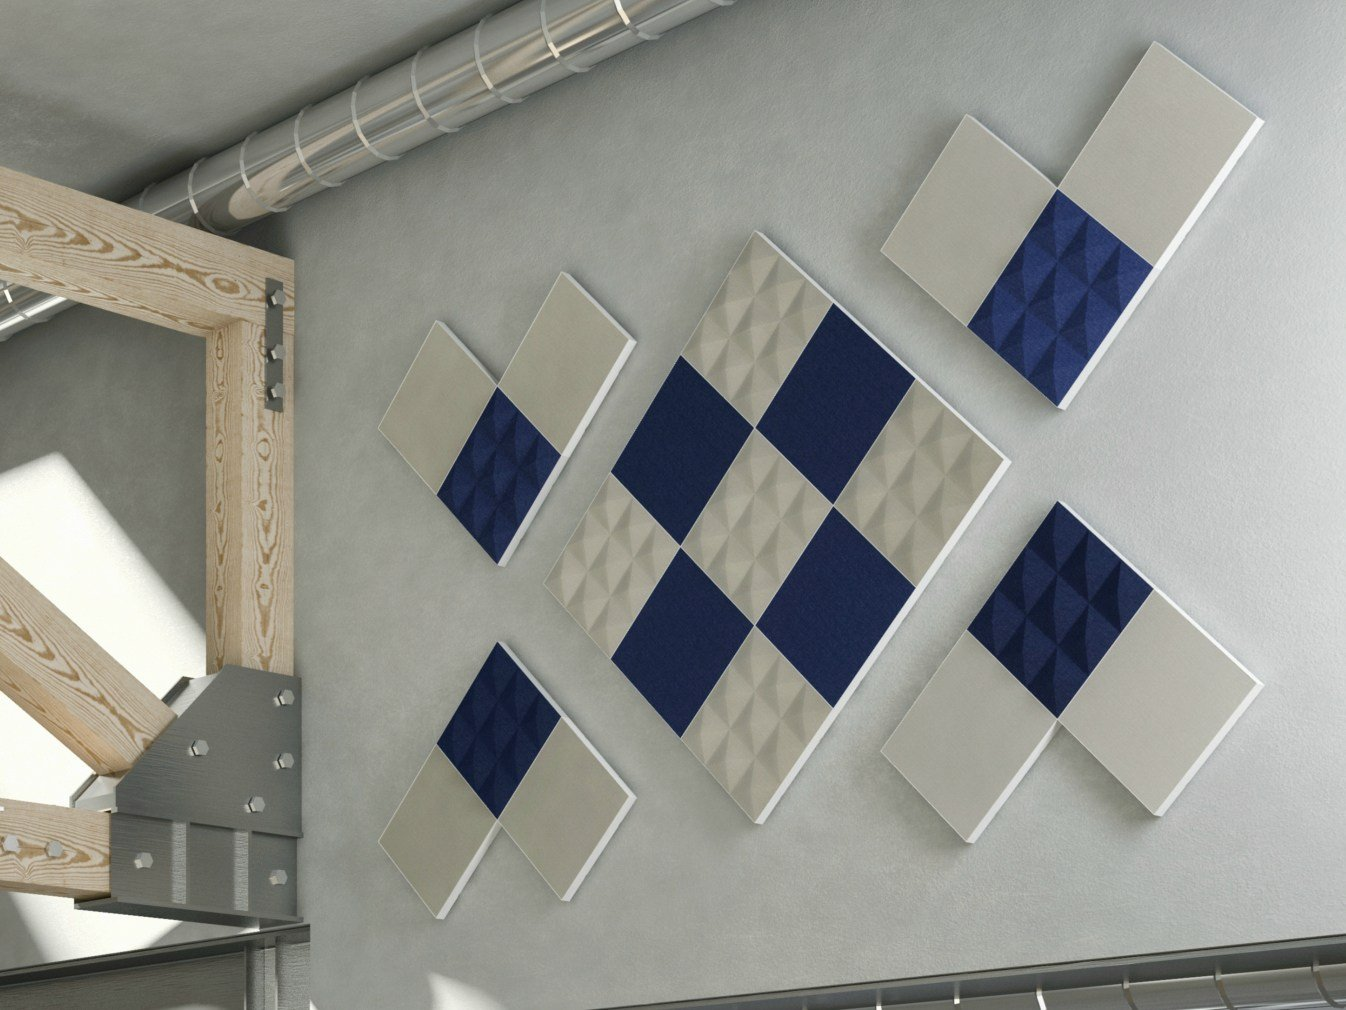 Polyester Decorative Acoustical Panels Stilly Gaber Acoustic Systems Collection By Gaber